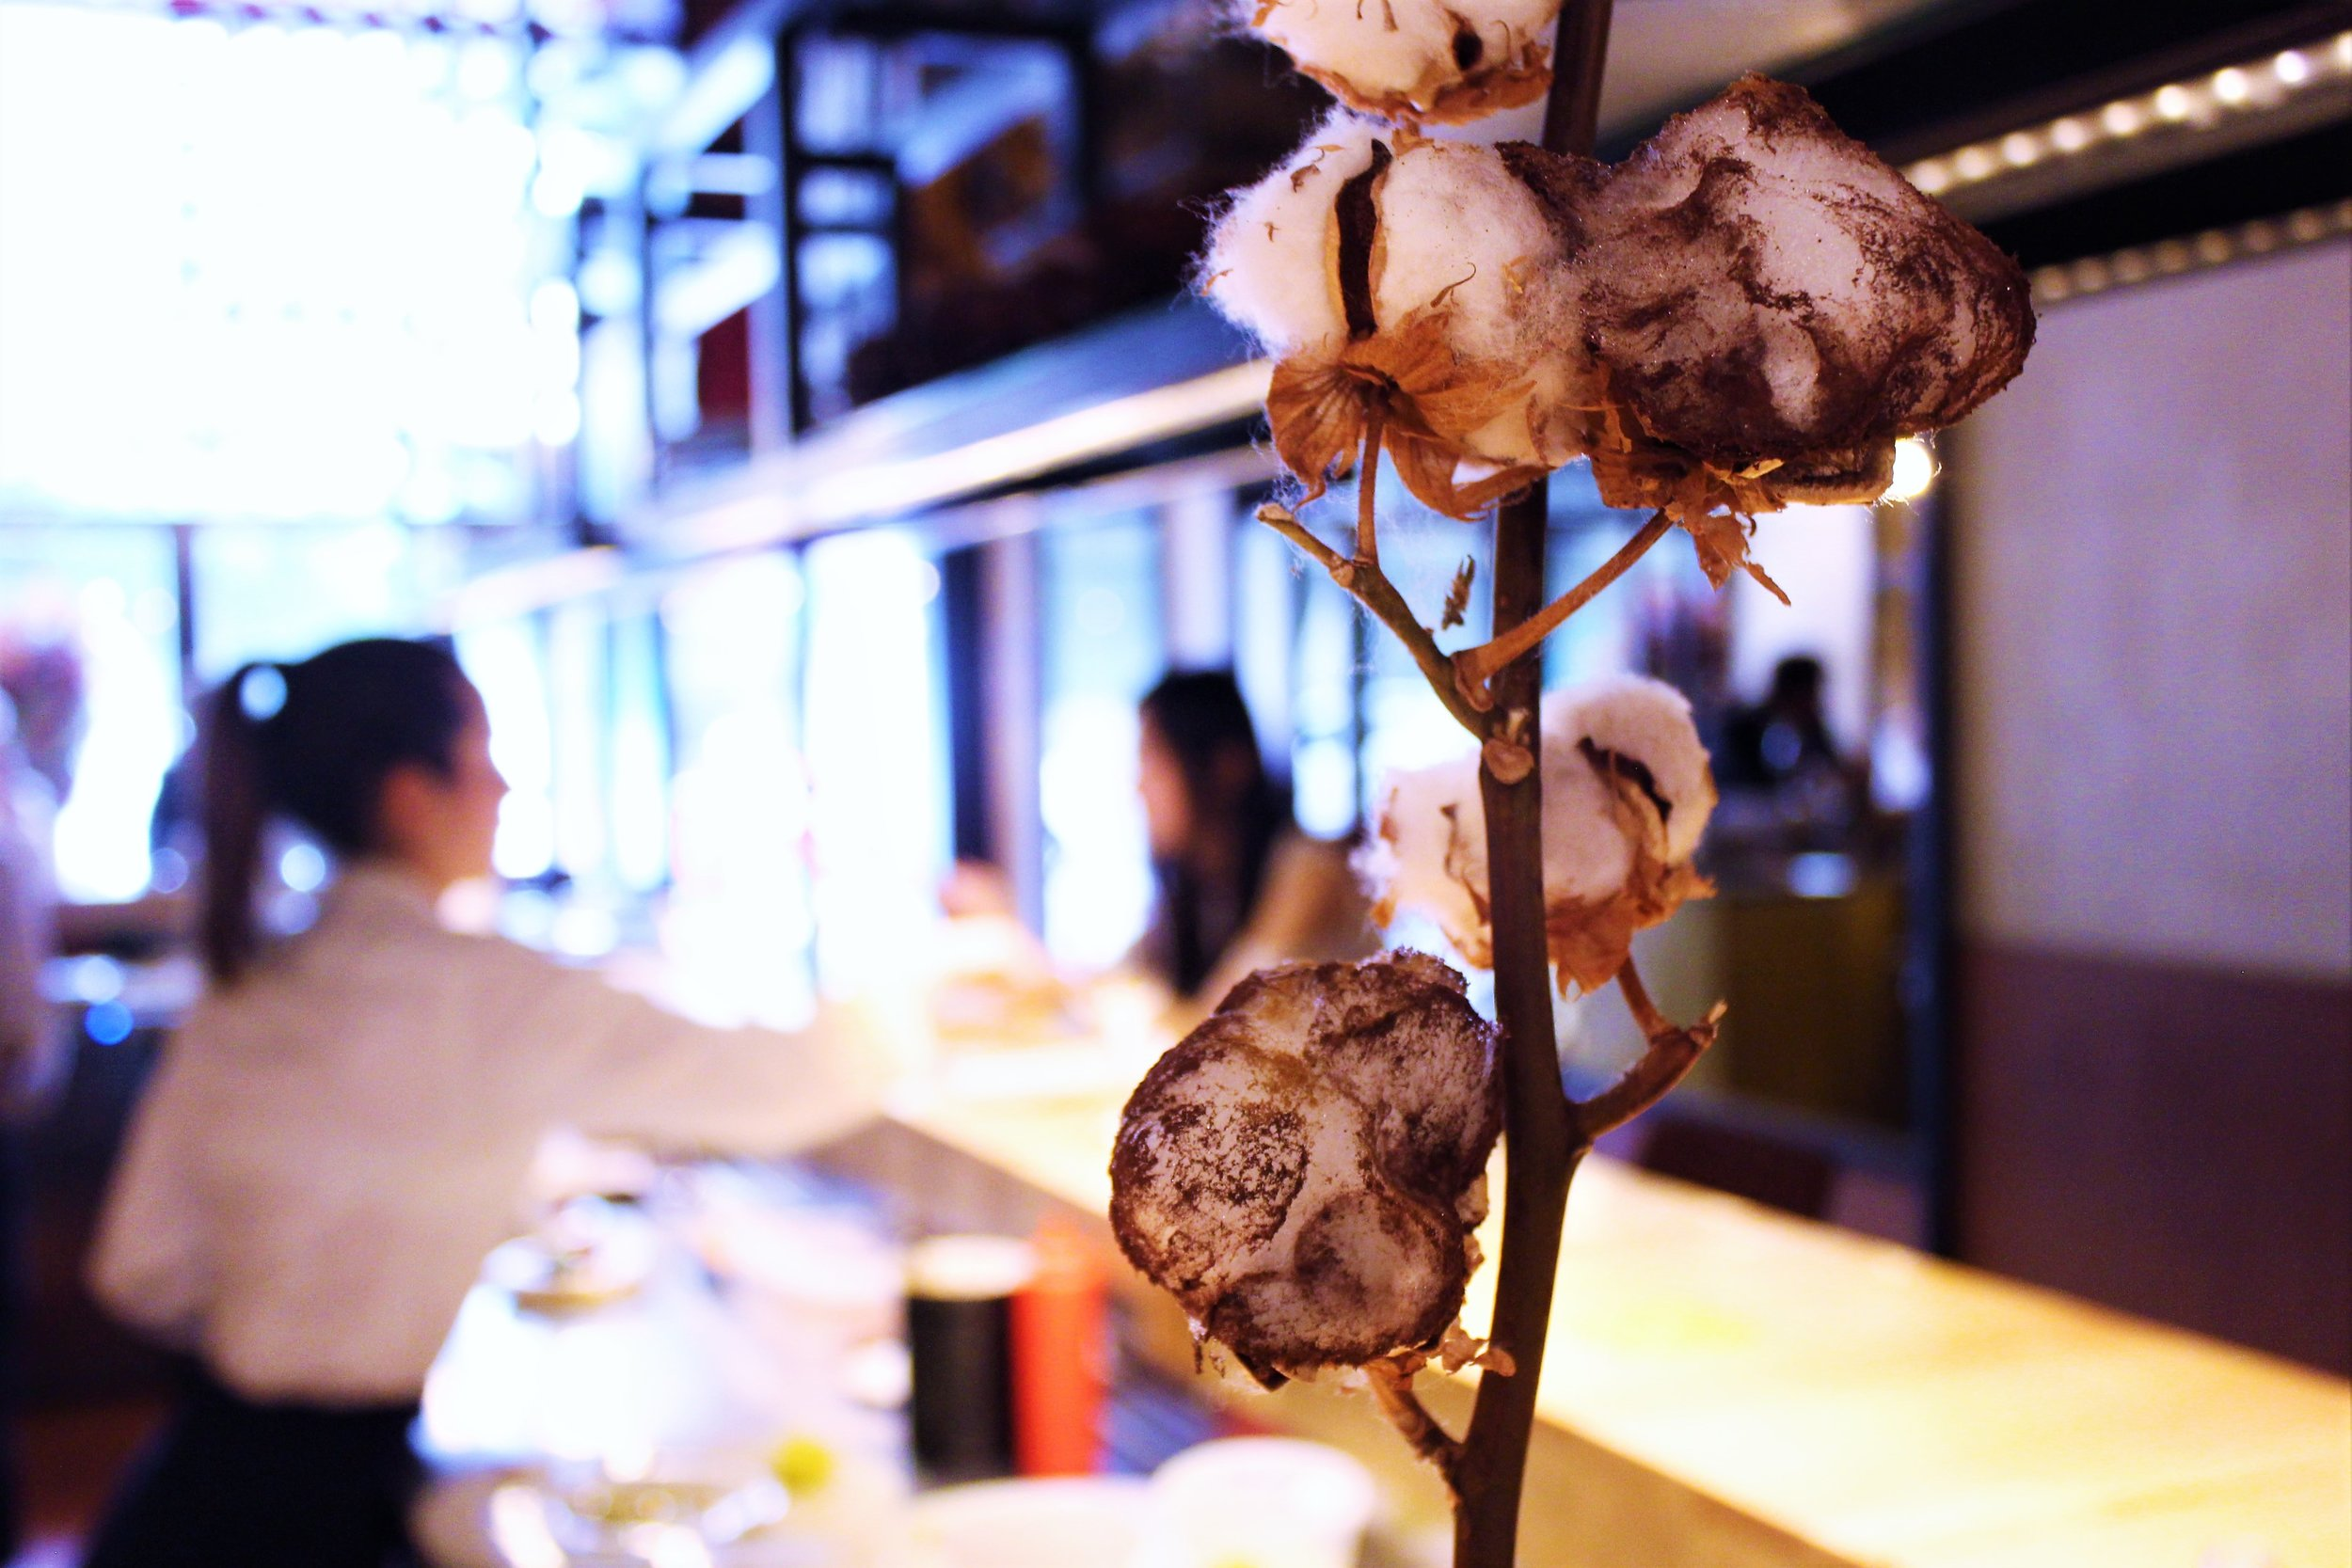 Cotton of Cocoa and Mint at Disfrutar in Barcelona